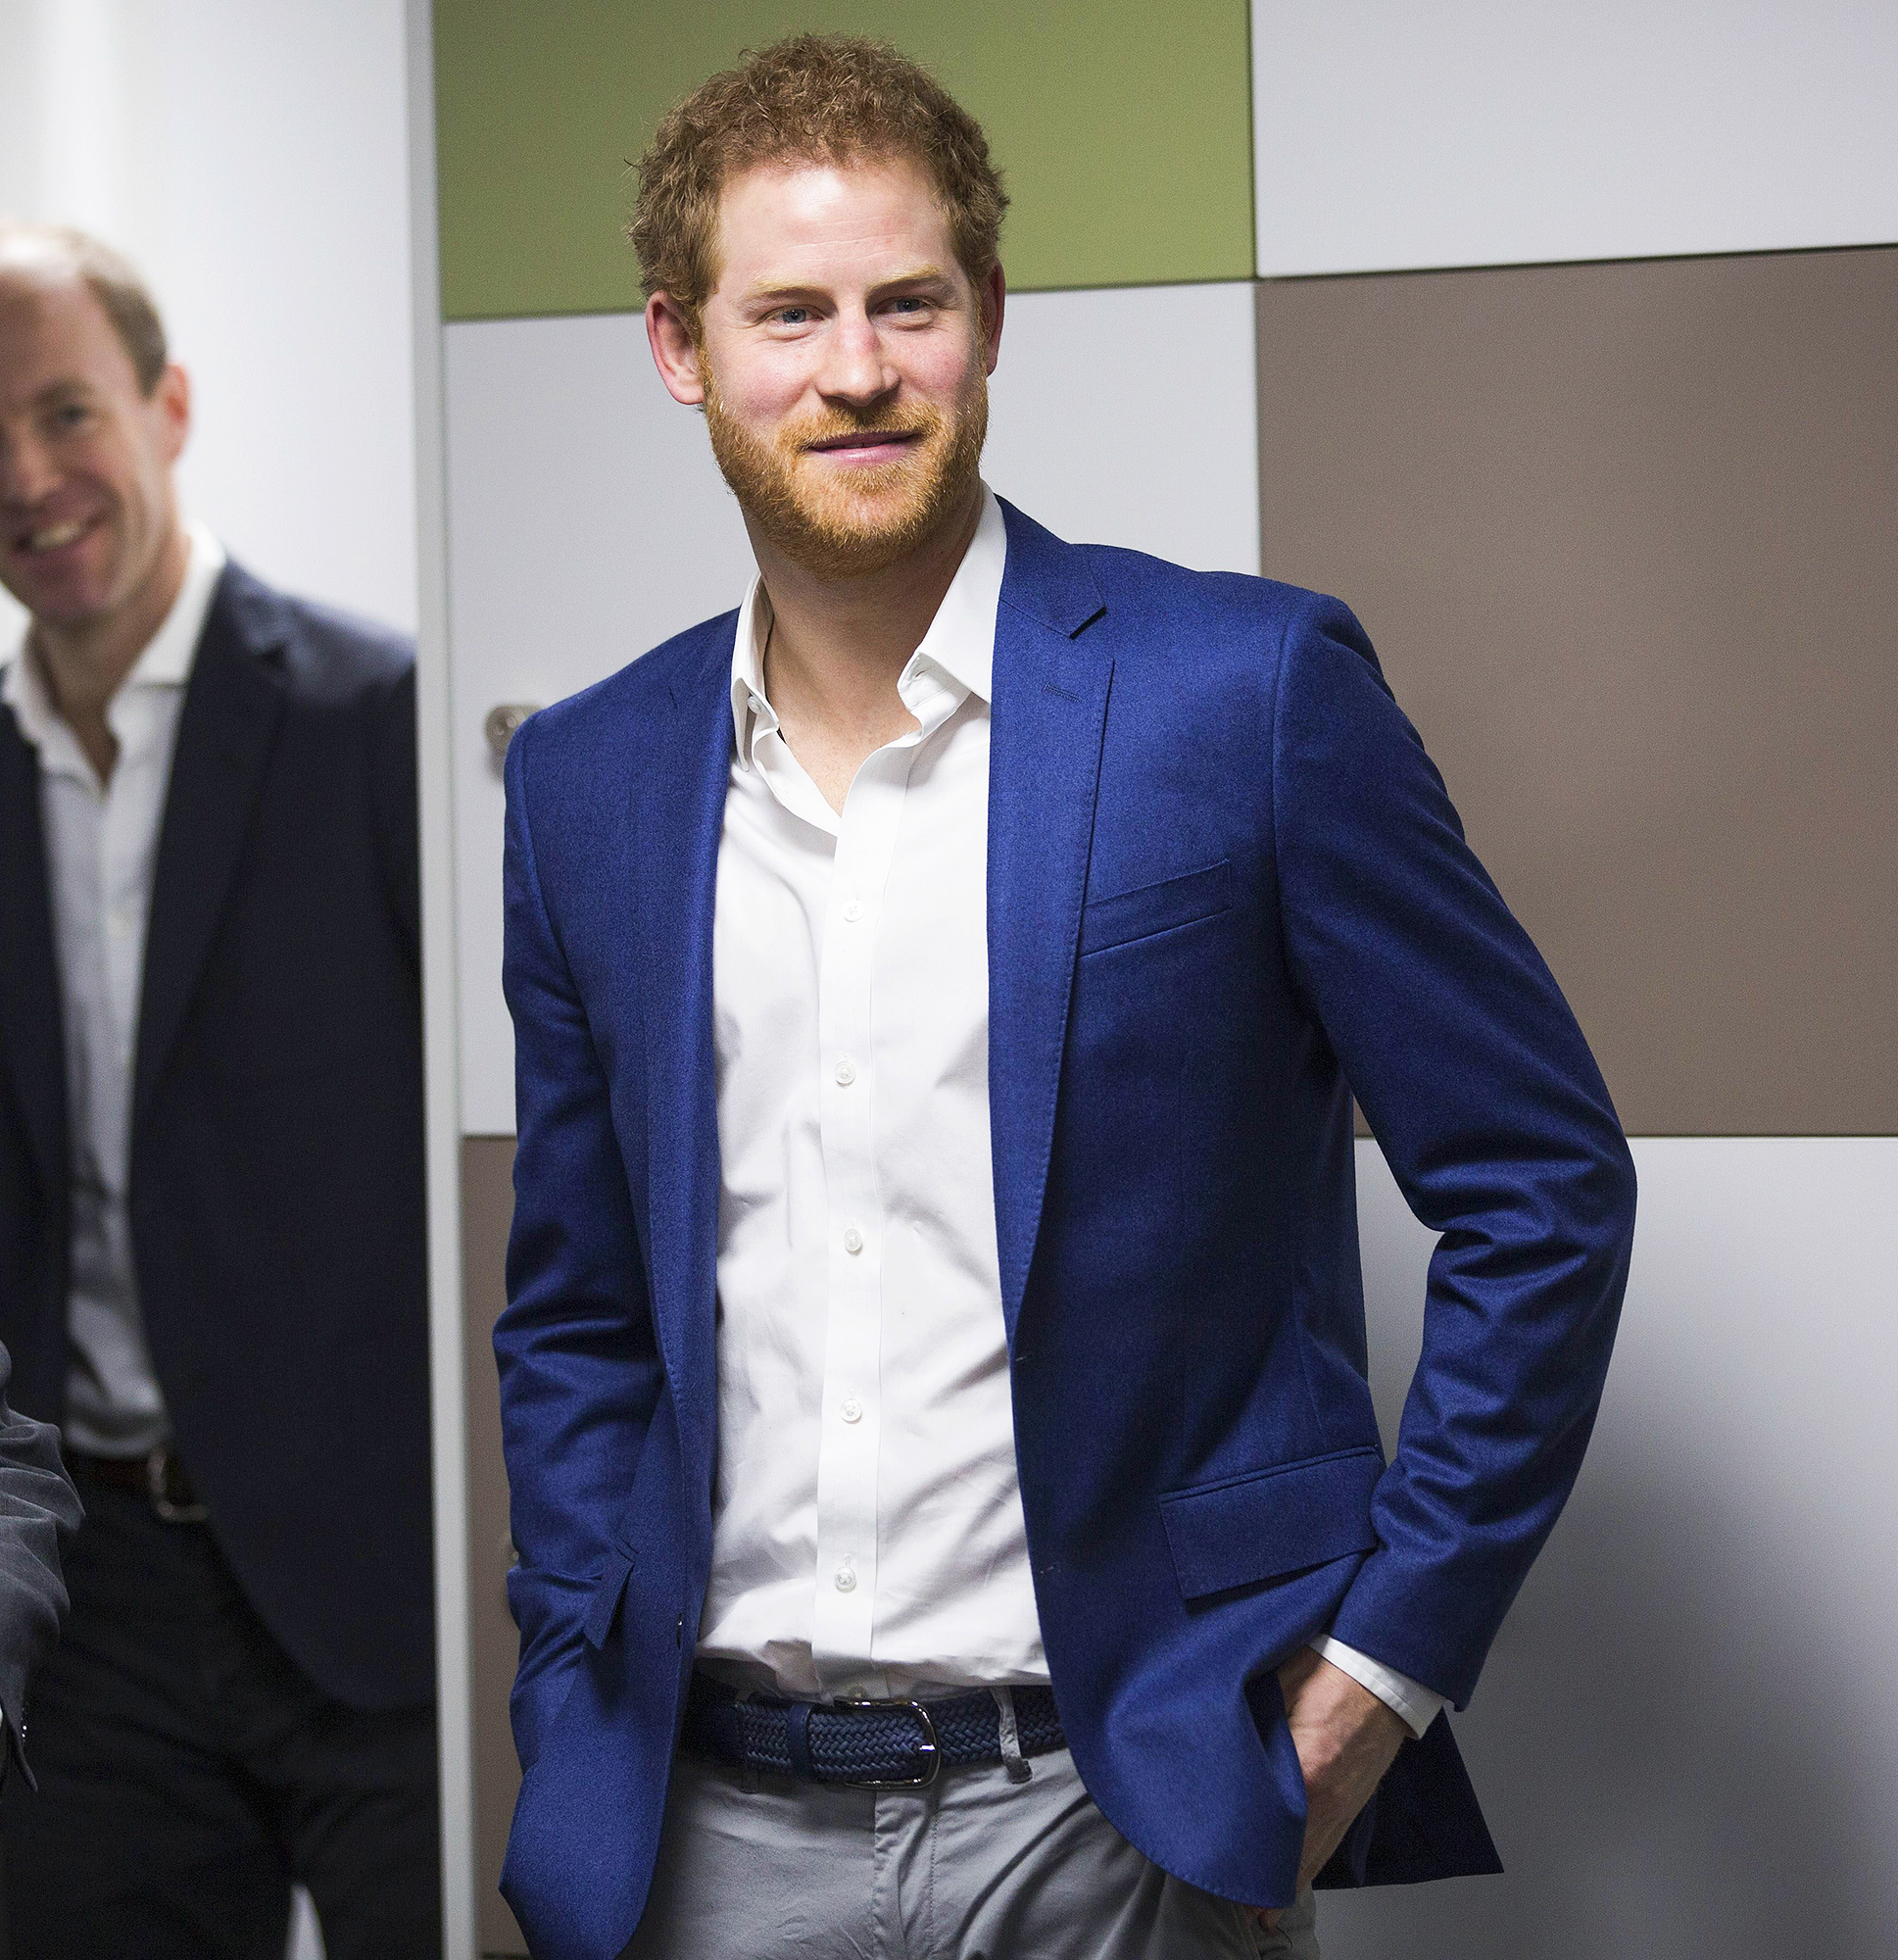 Prince Harry visits the Big White Wall in London